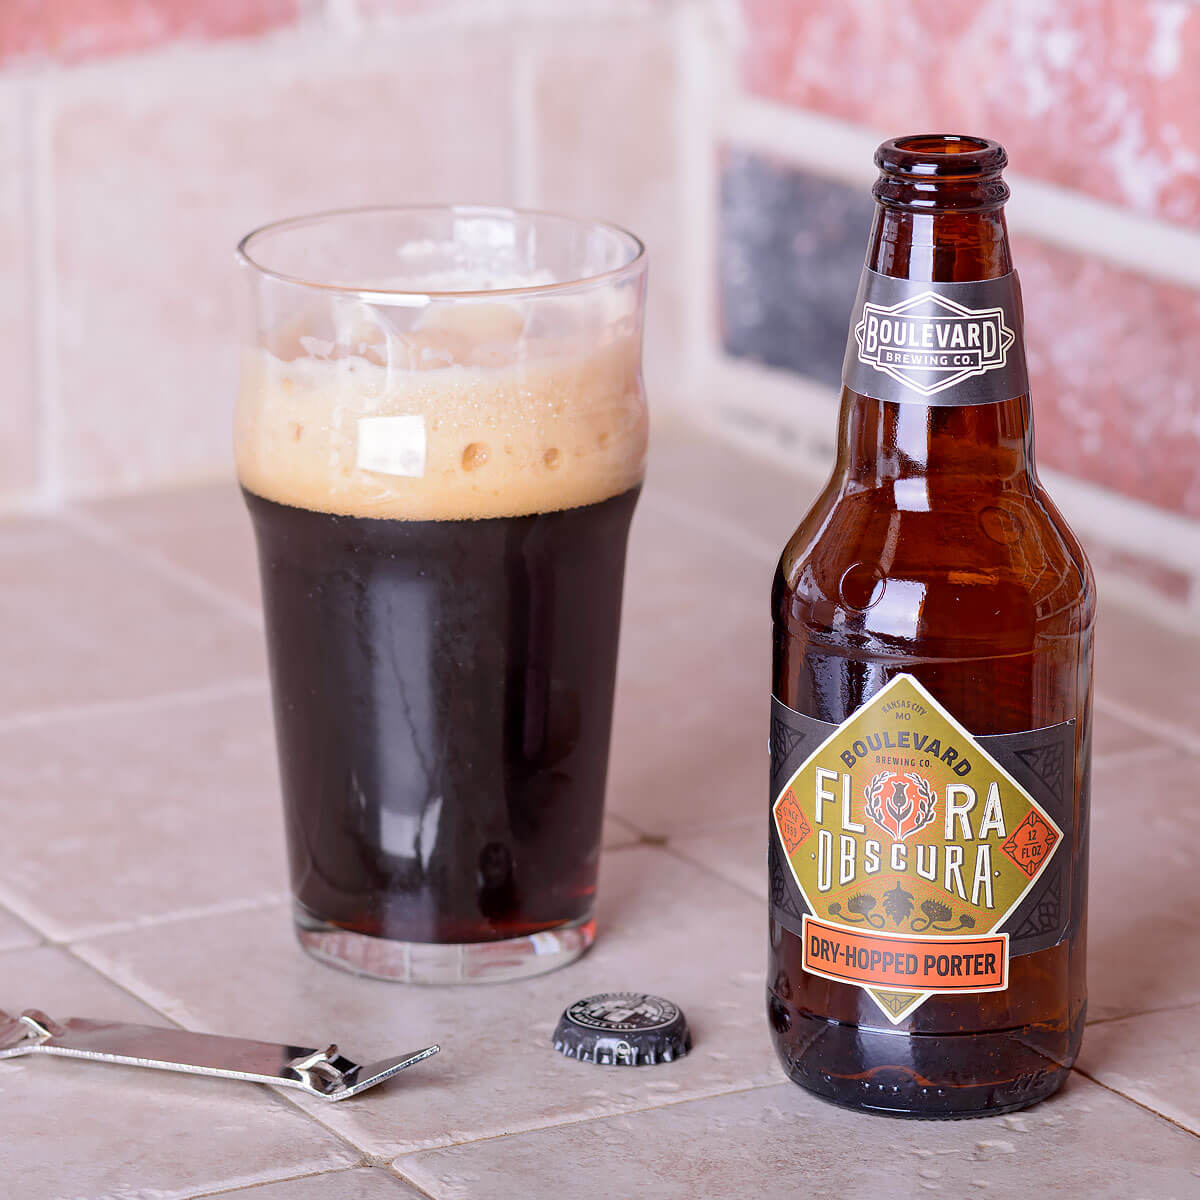 Flora Obscura, an American Porter by Boulevard Brewing Co.